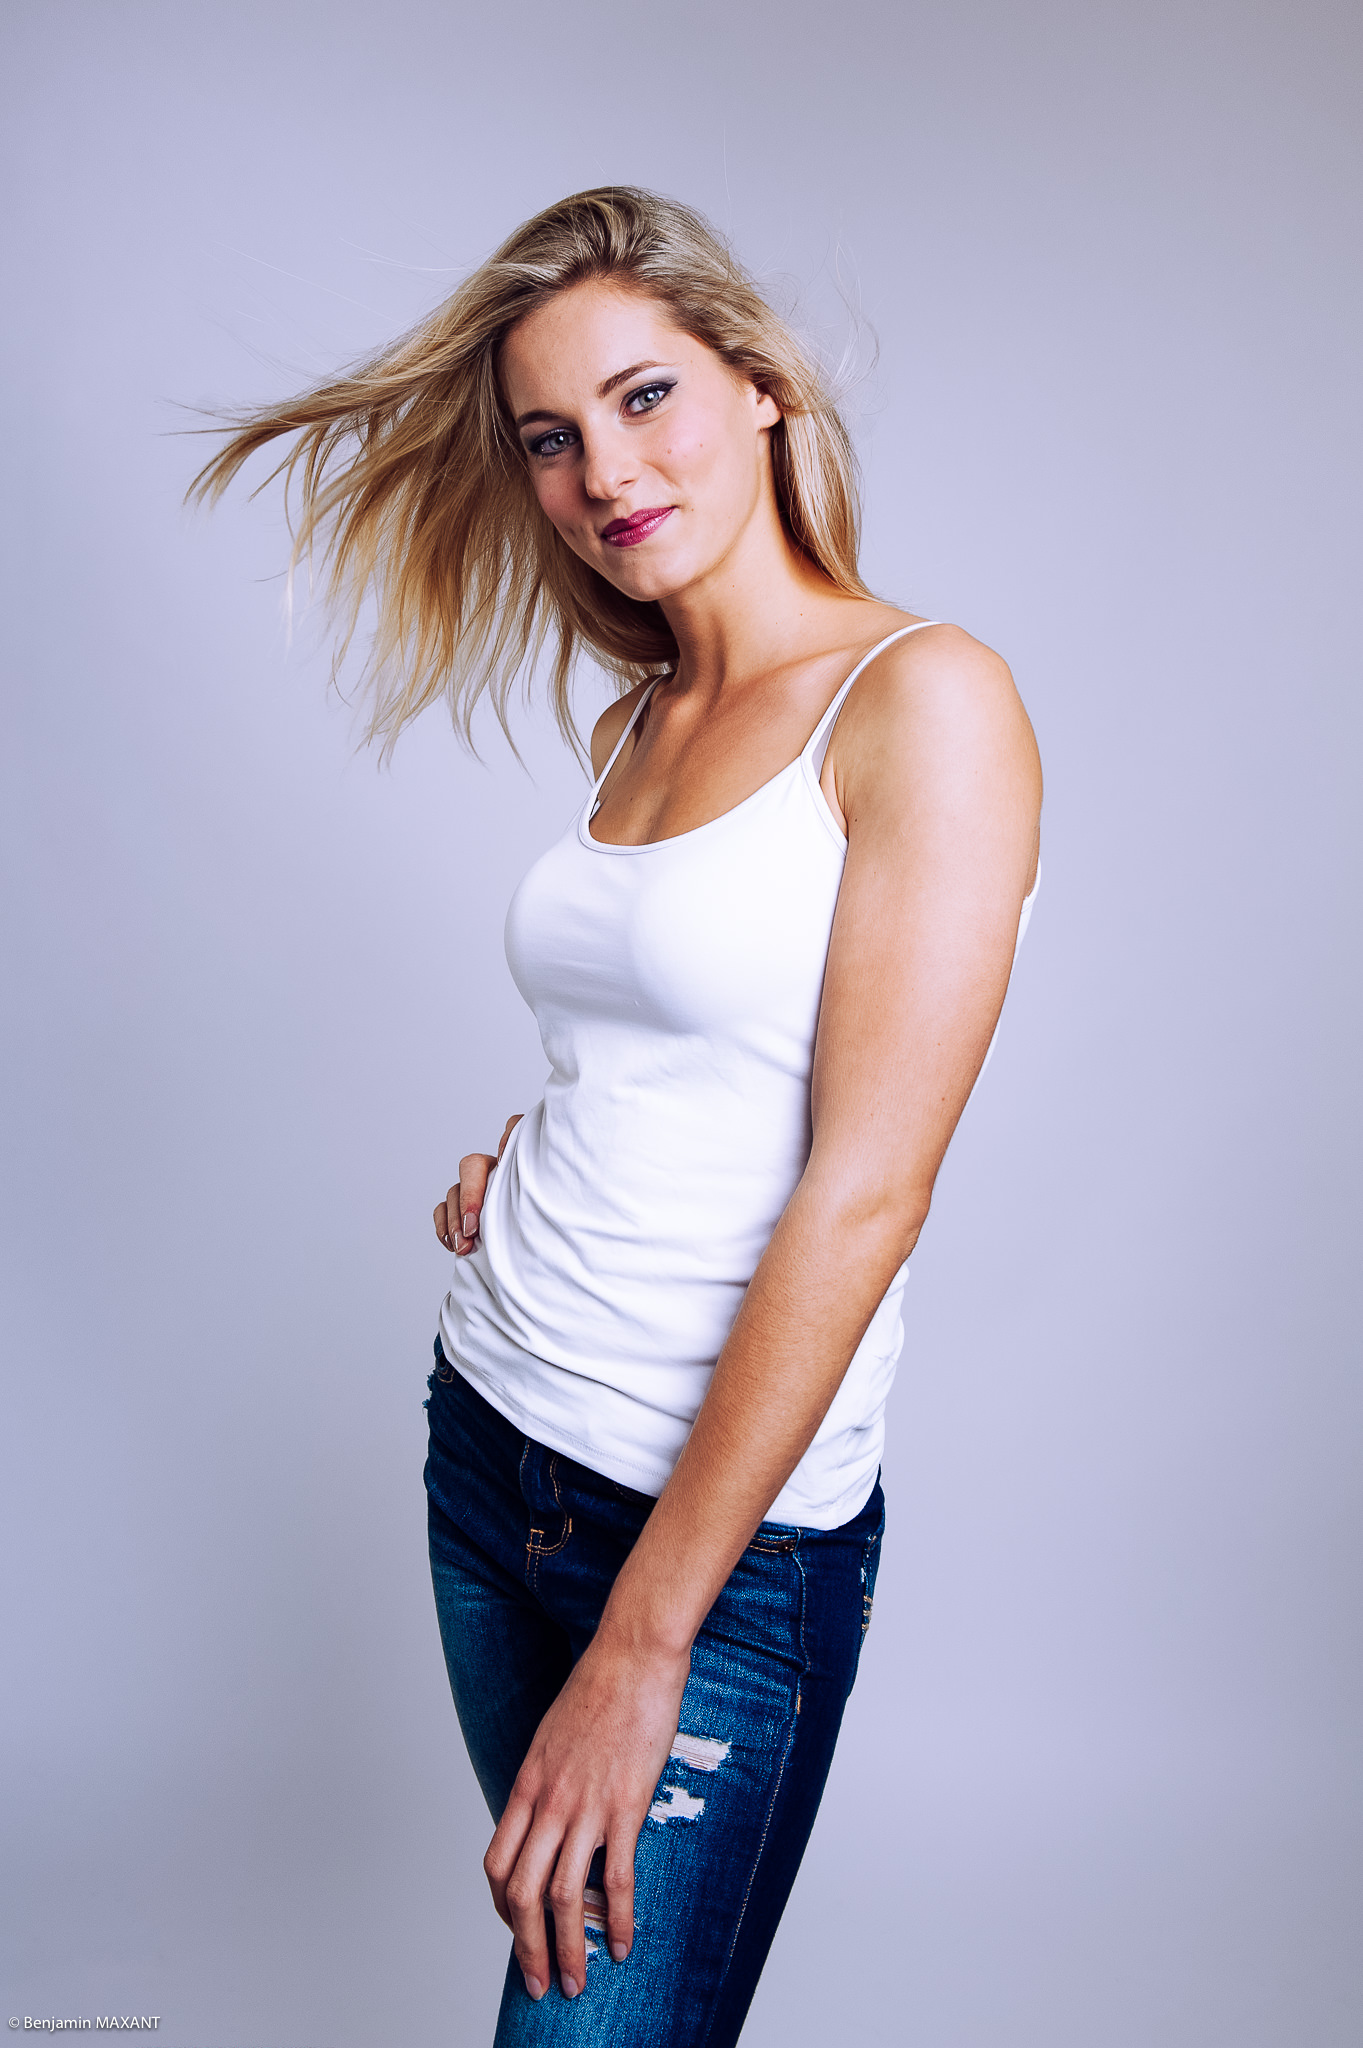 Casual photo shoot in studio jeans top white blonde model